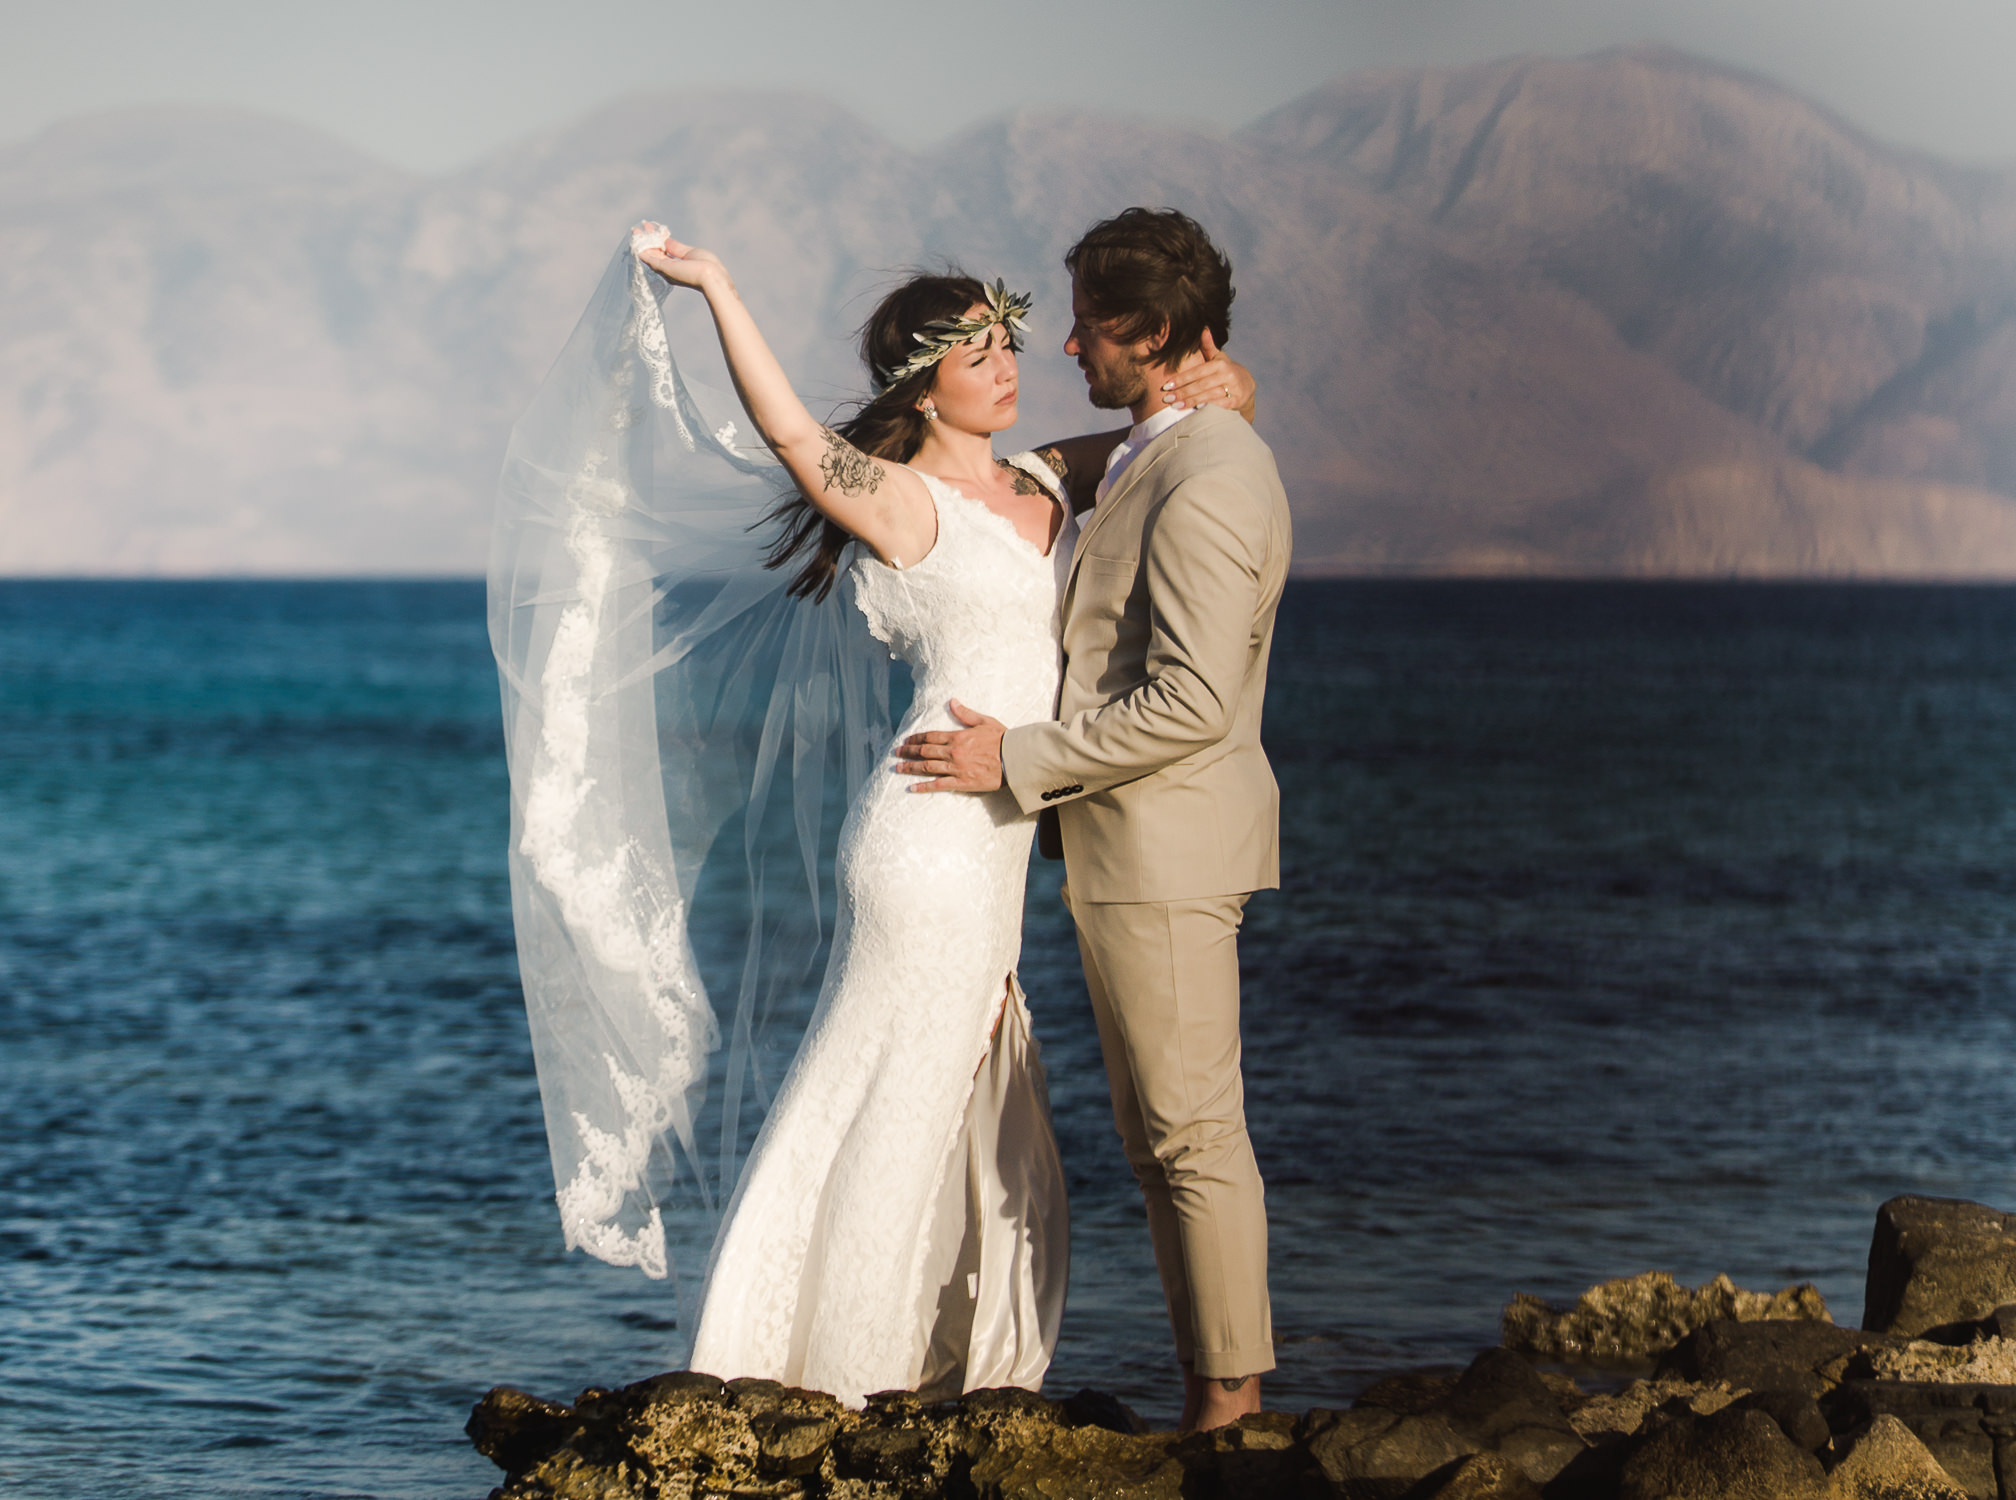 Fotomagoria - Elounda - Crete - Greece Wedding 412.jpg